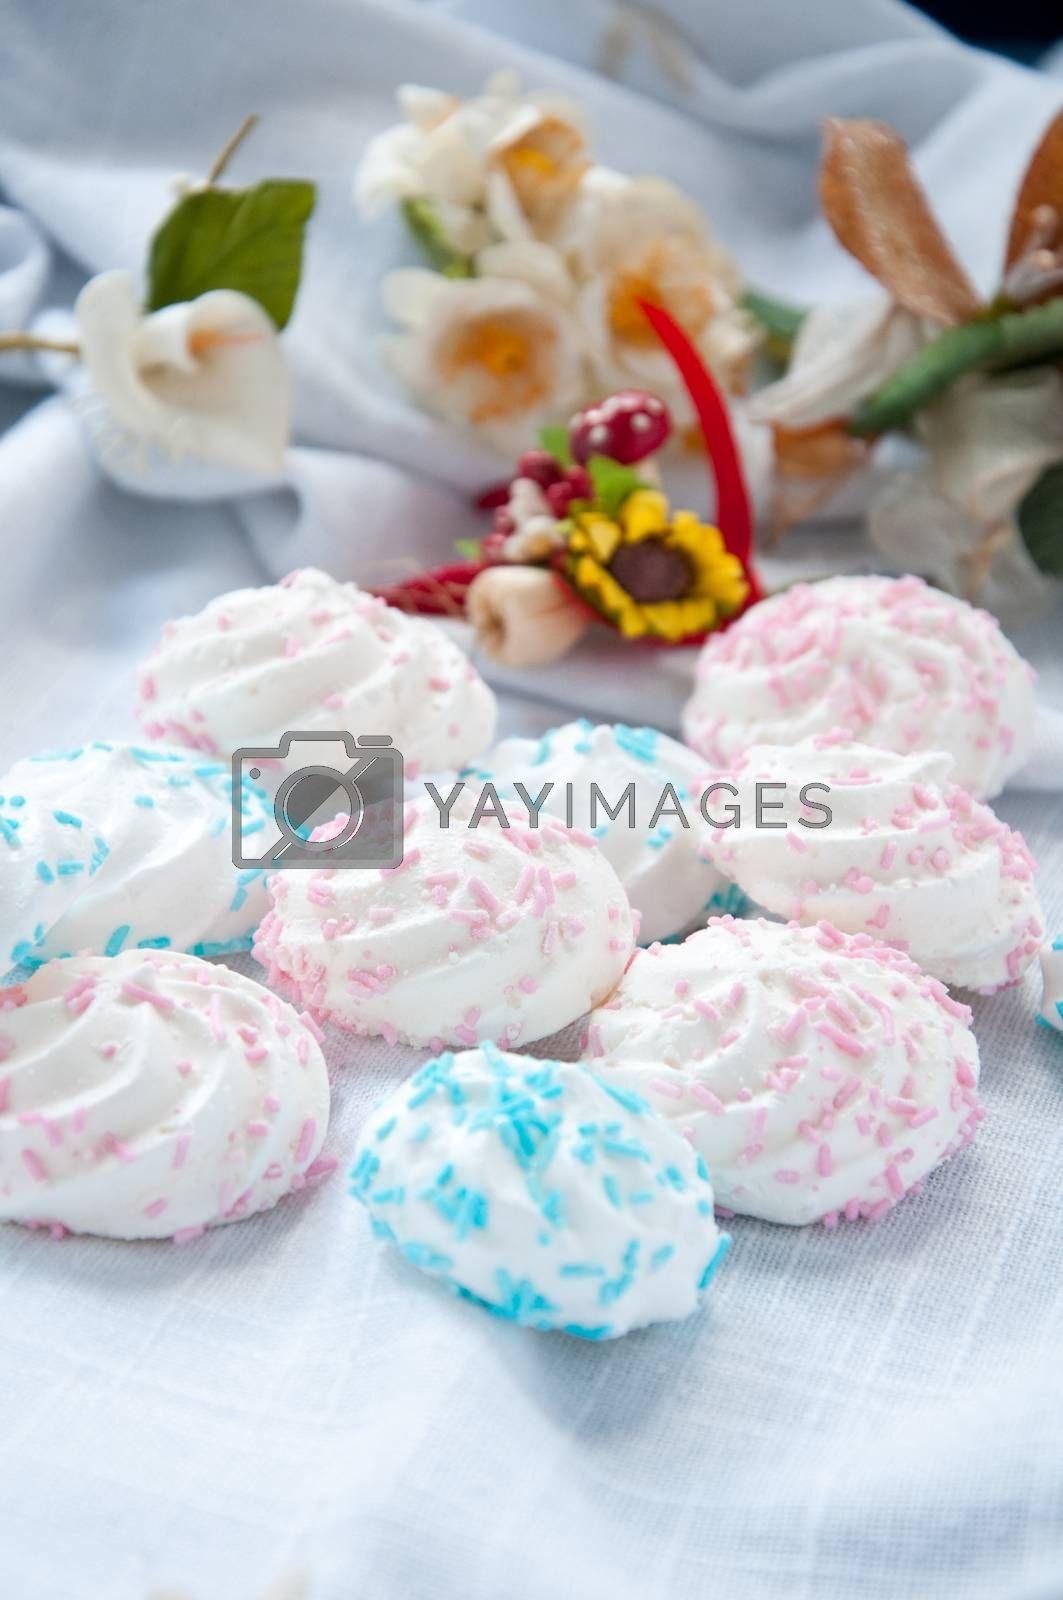 Royalty free image of Meringue small tasty sweet made from sugar and egg by gringox